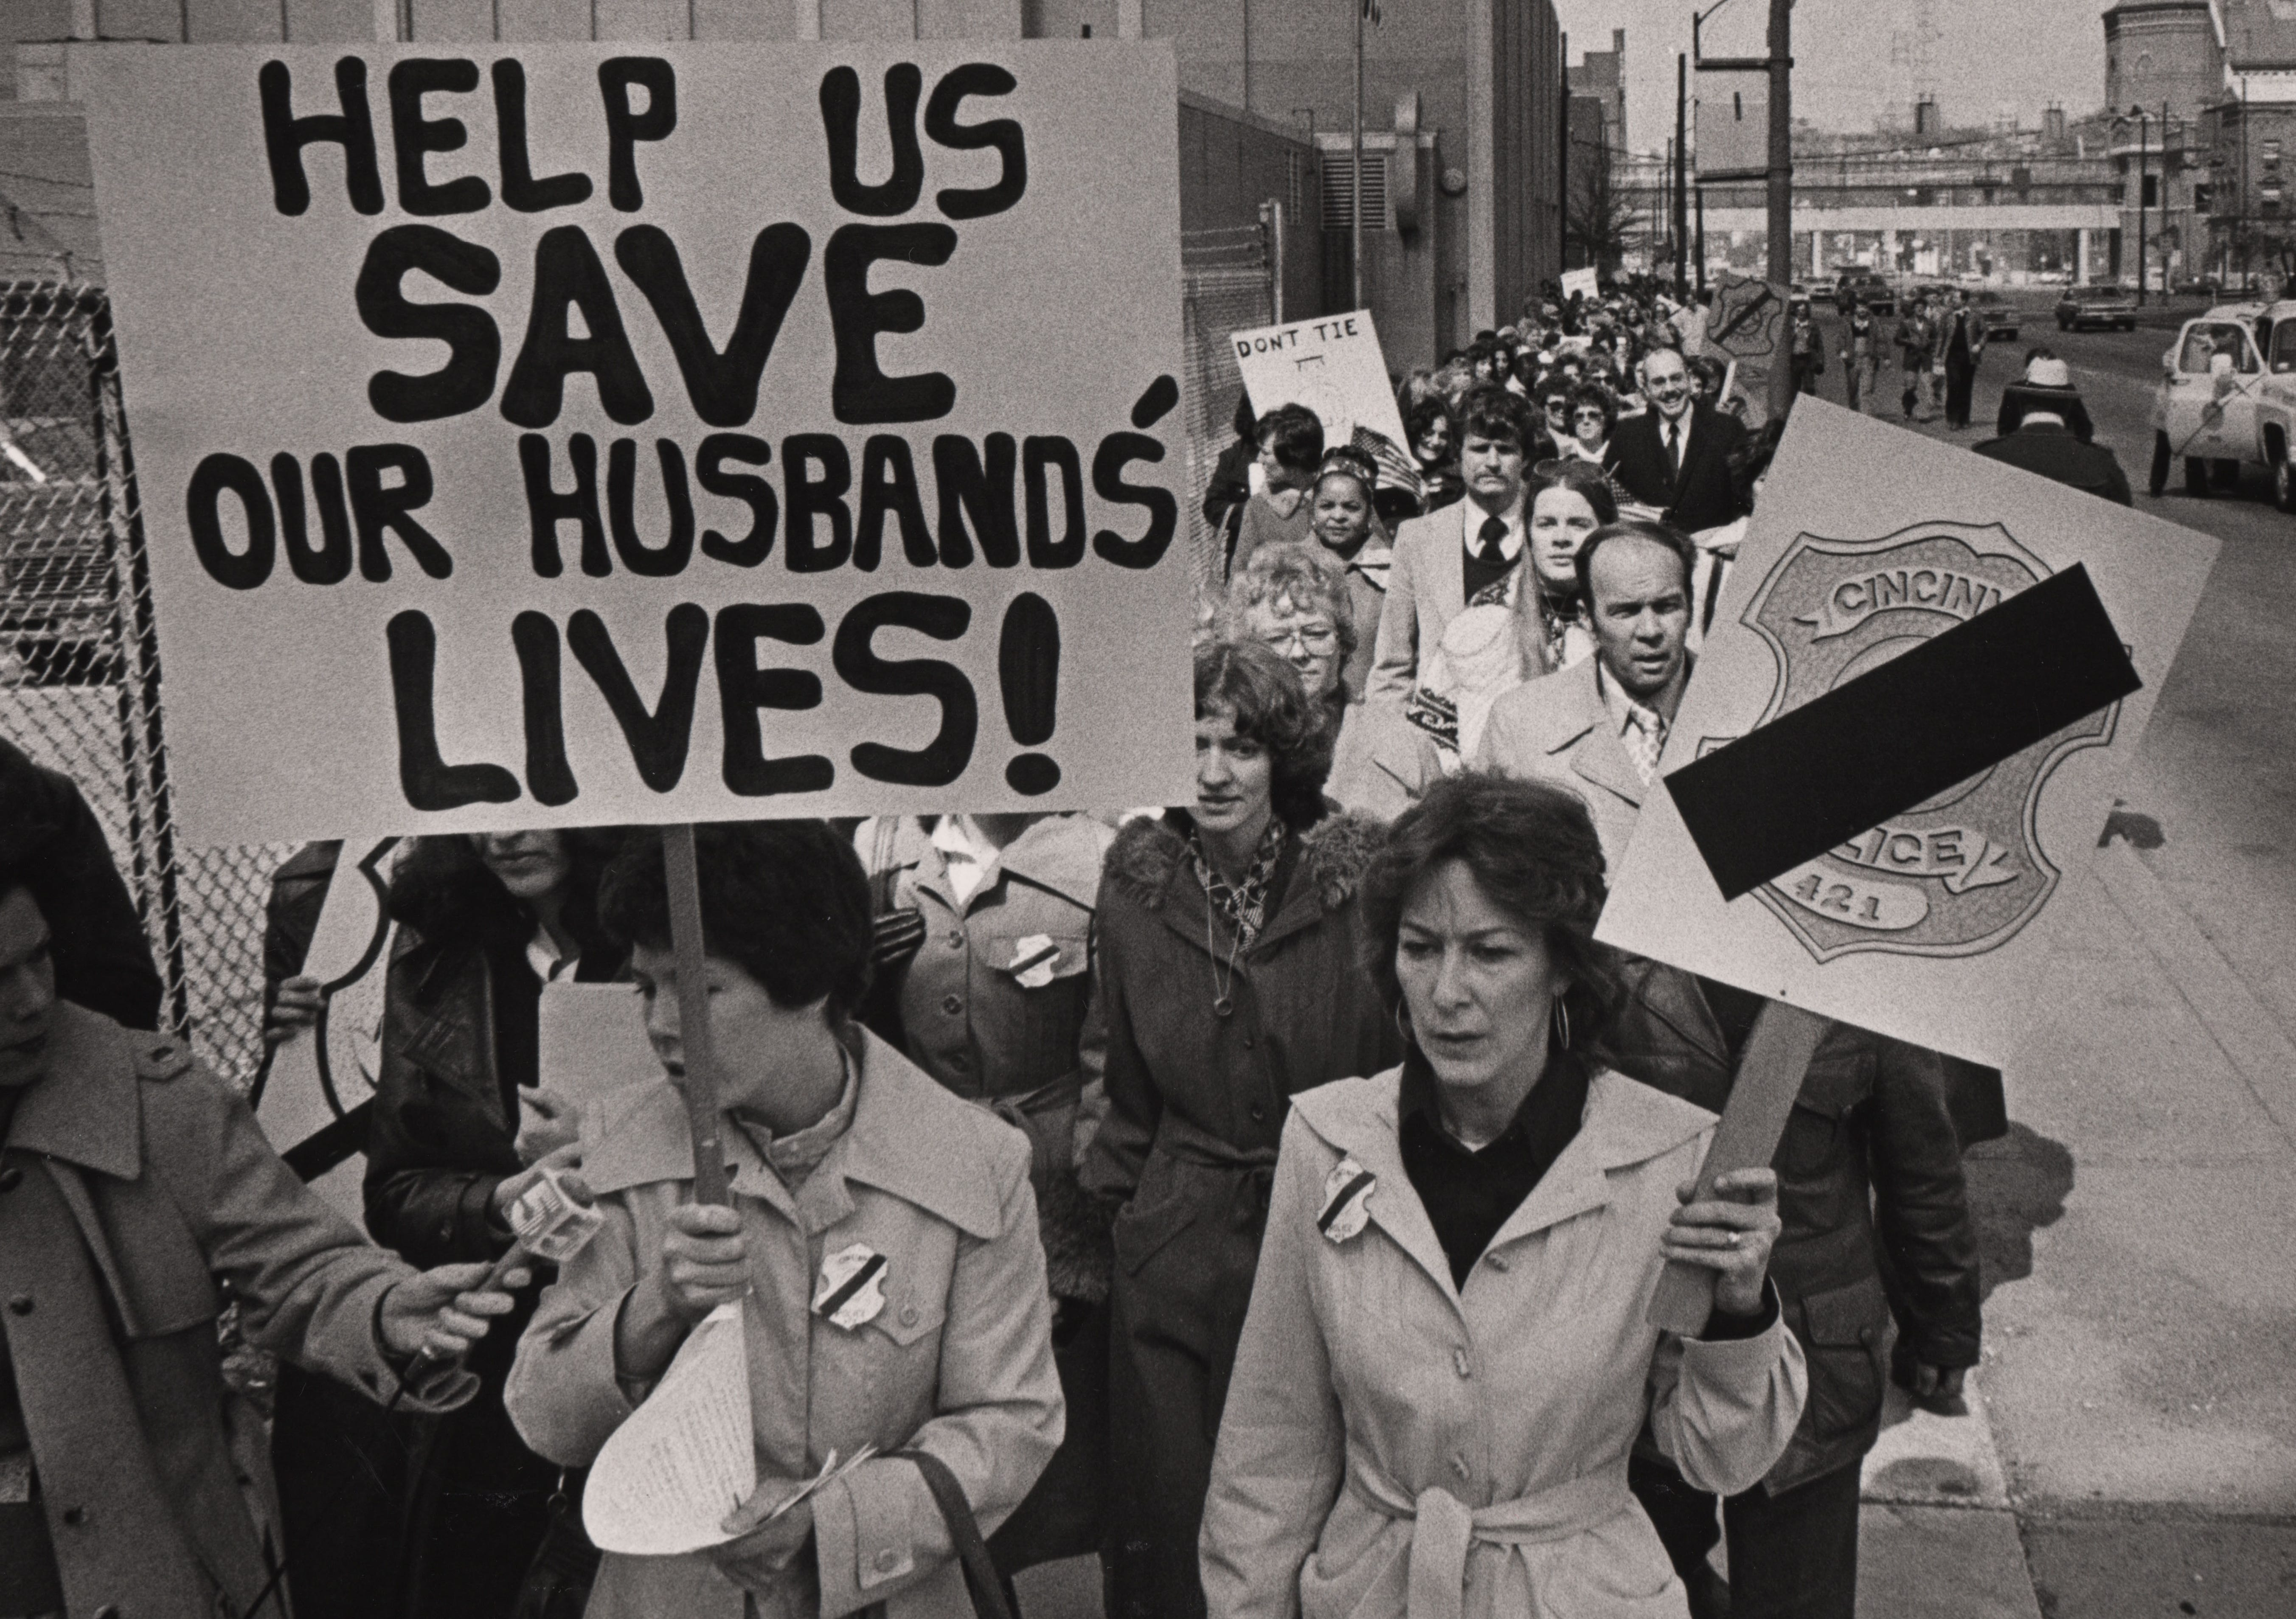 Police officer's wives in Cincinnati rallied together in 1979 to call for bulletproof vests and other protections for their husbands after four police officers were killed in the span of eight months.